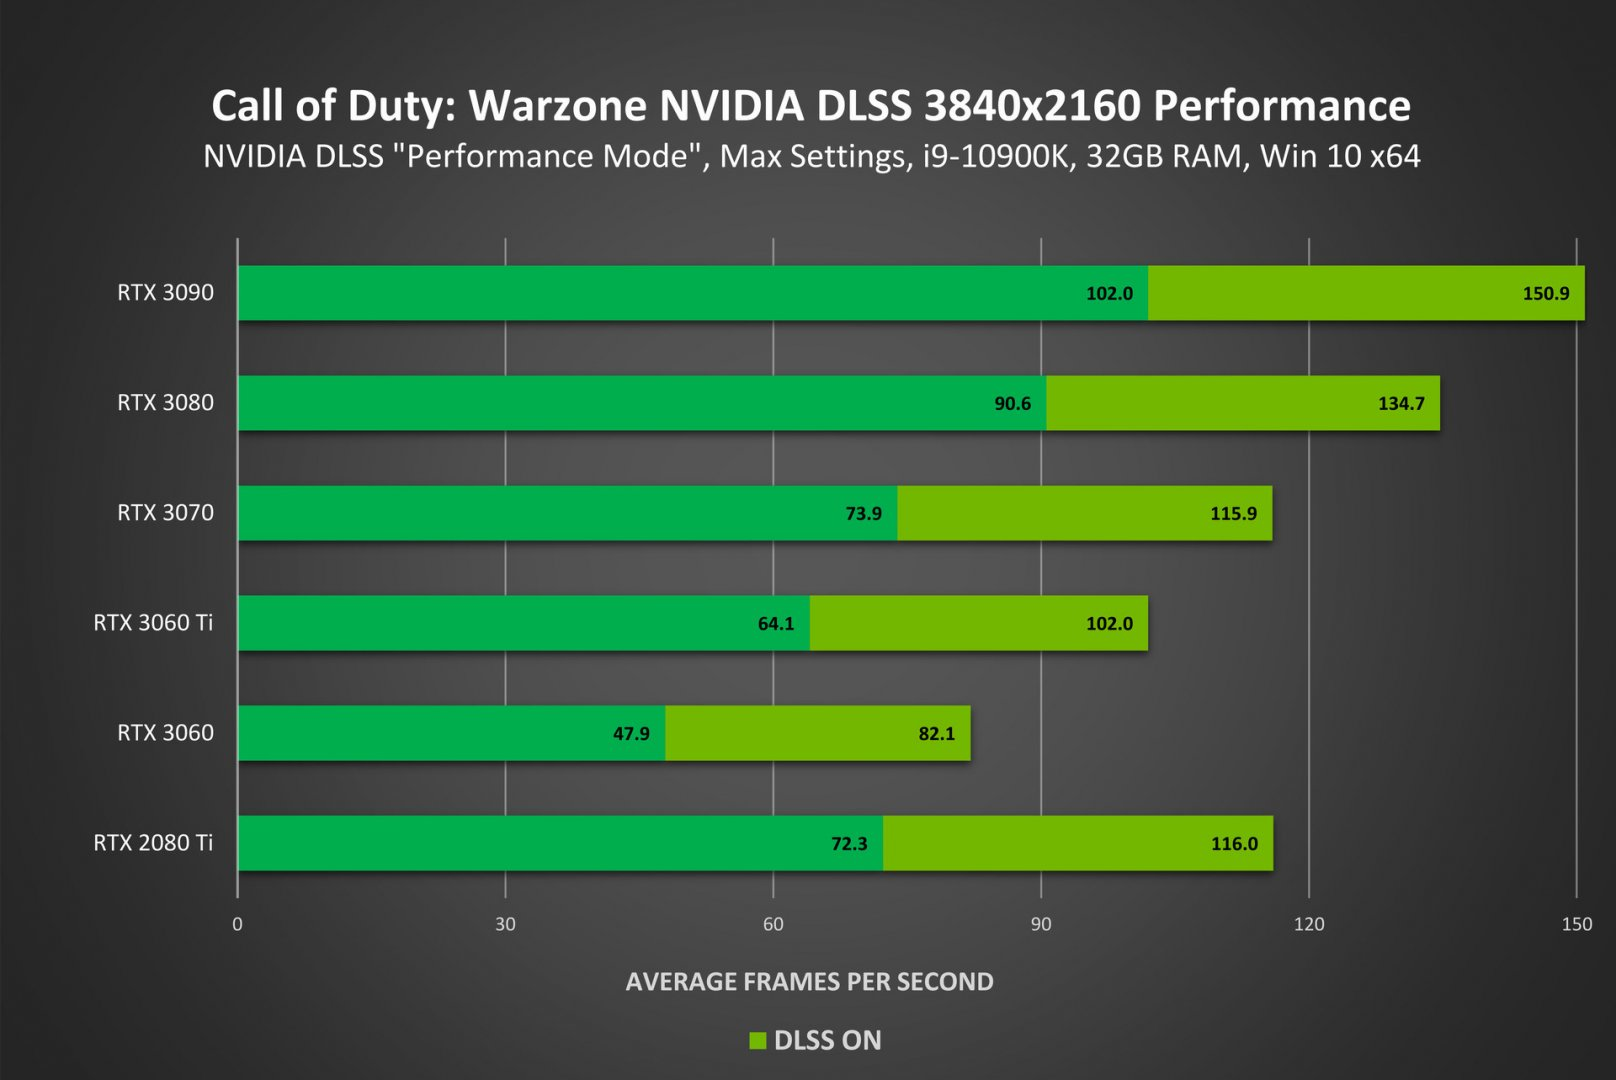 call-of-duty-warzone-geforce-rtx-3840x2160-nvidia-dlss-performance